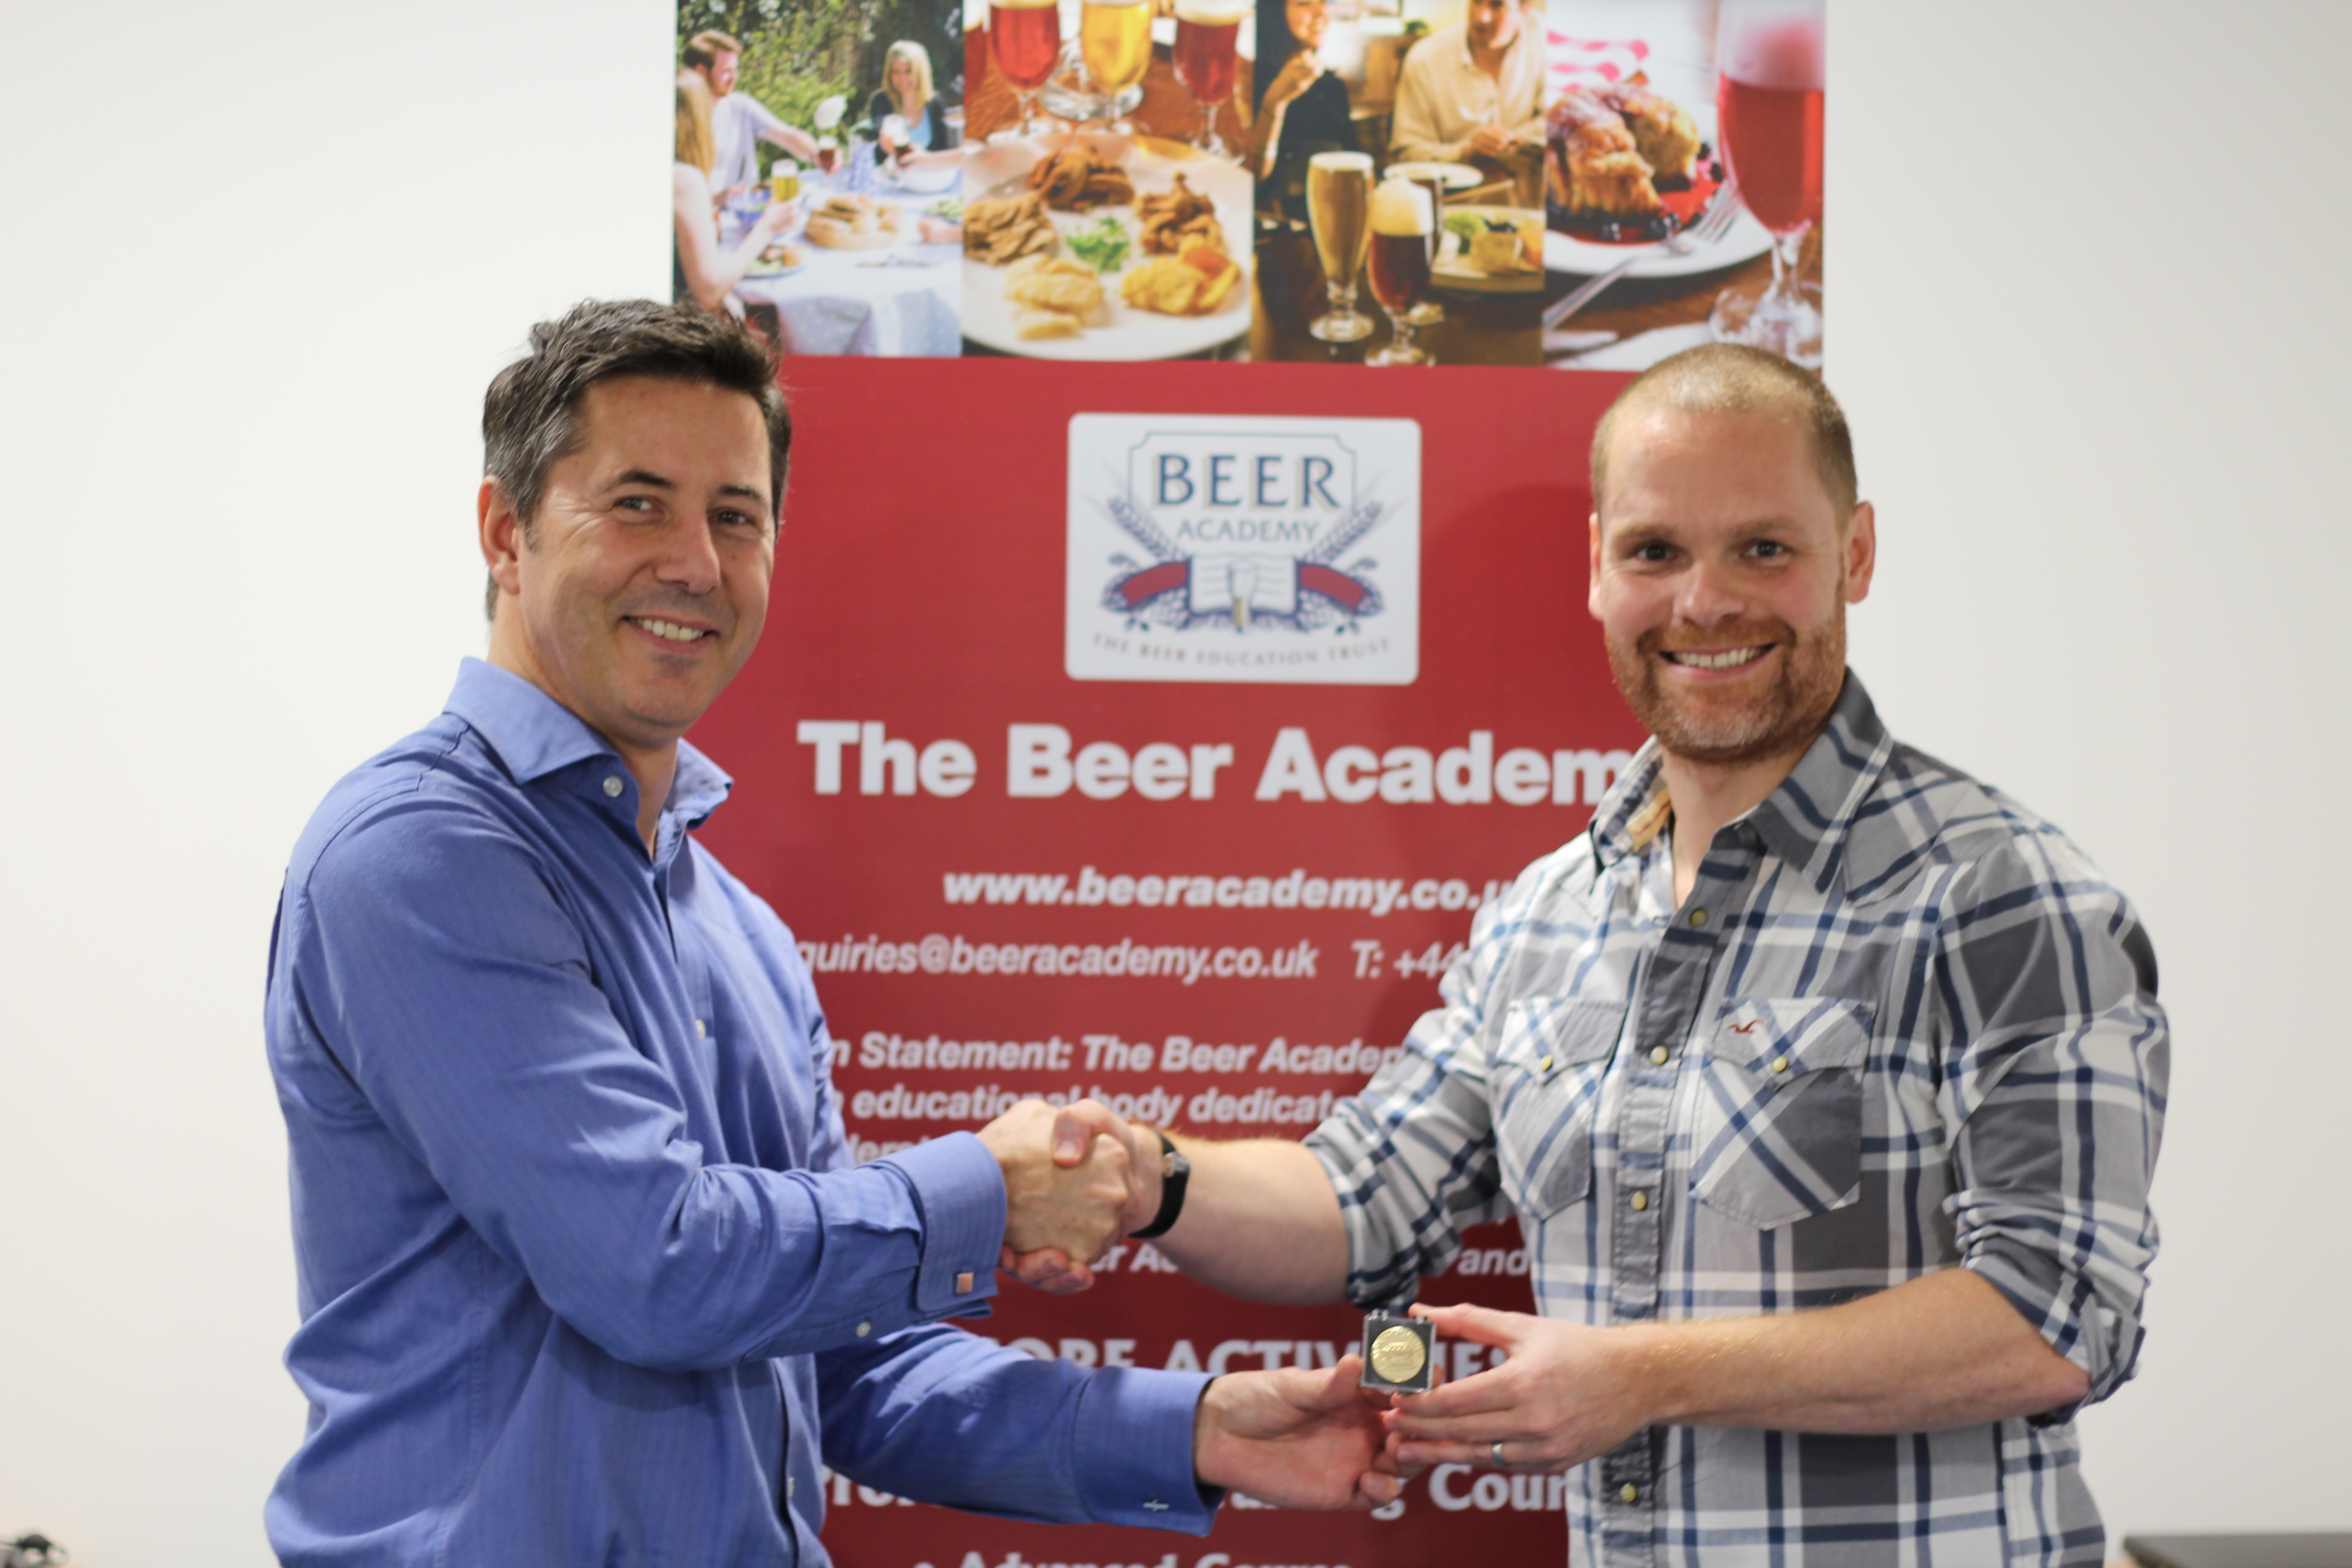 Adam Williams, Wirral, England<br>Accredited: 22nd October 2015